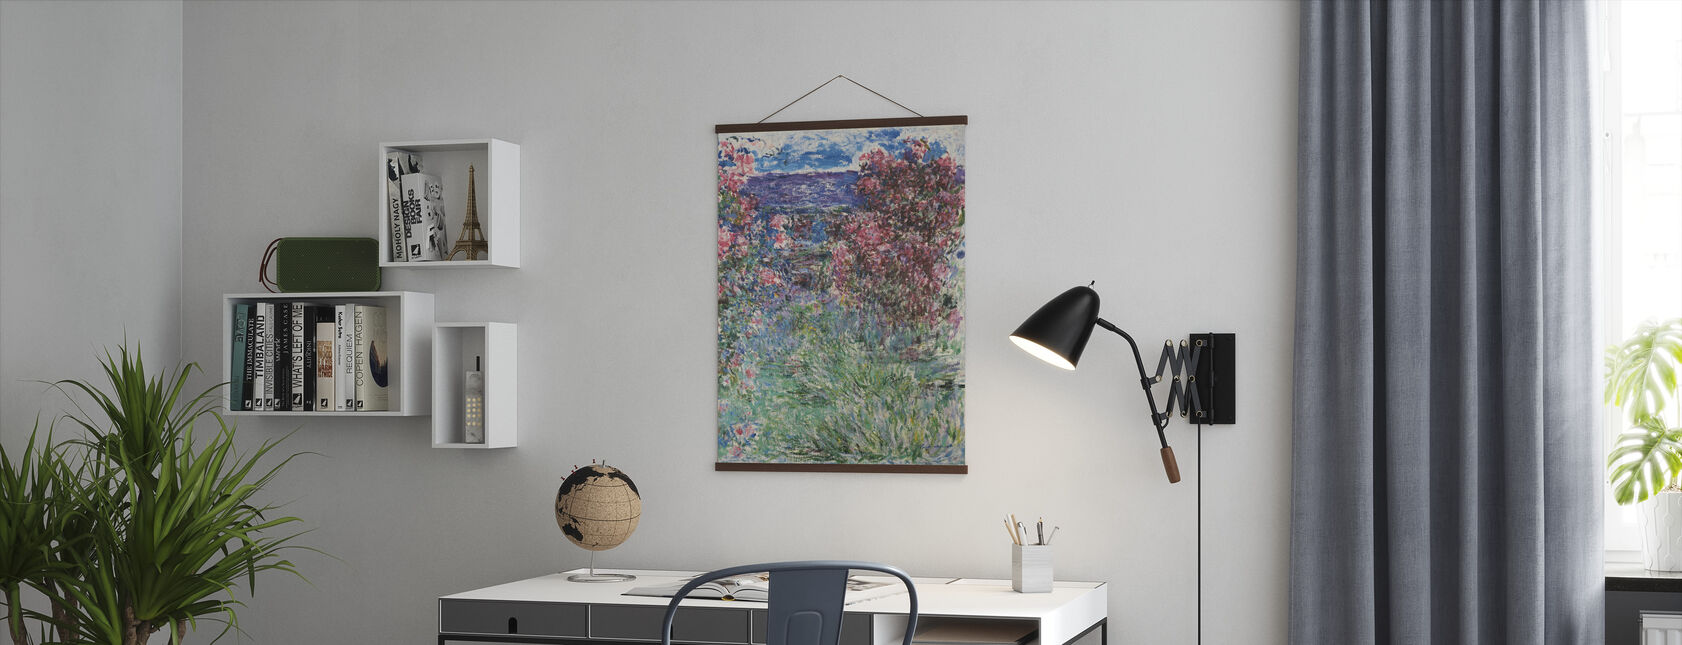 House Among Roses - Claude Monet - Poster - Office